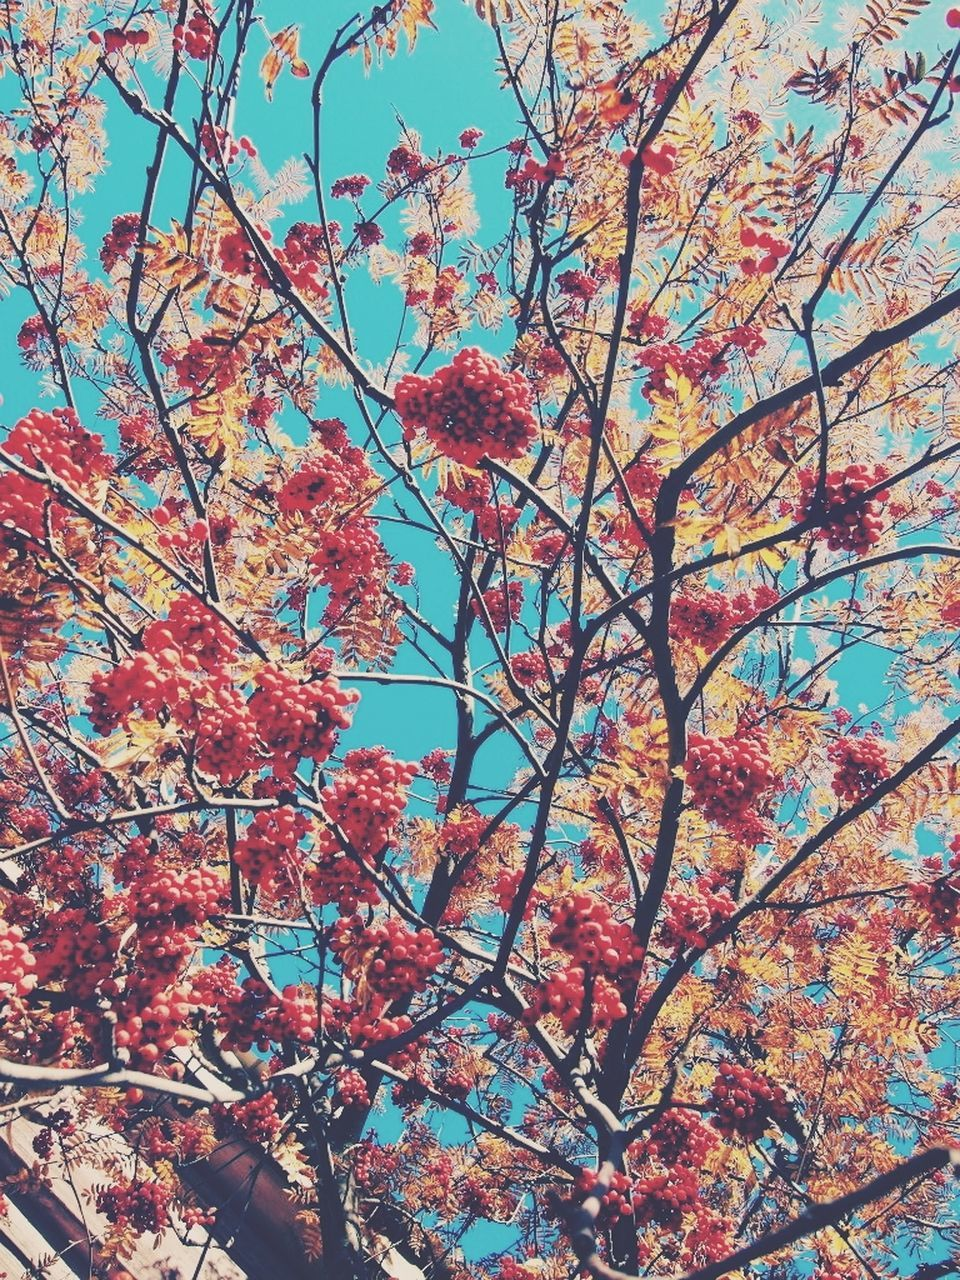 tree, beauty in nature, branch, low angle view, growth, nature, flower, blossom, no people, autumn, day, outdoors, springtime, tranquility, sky, scenics, fragility, backgrounds, freshness, close-up